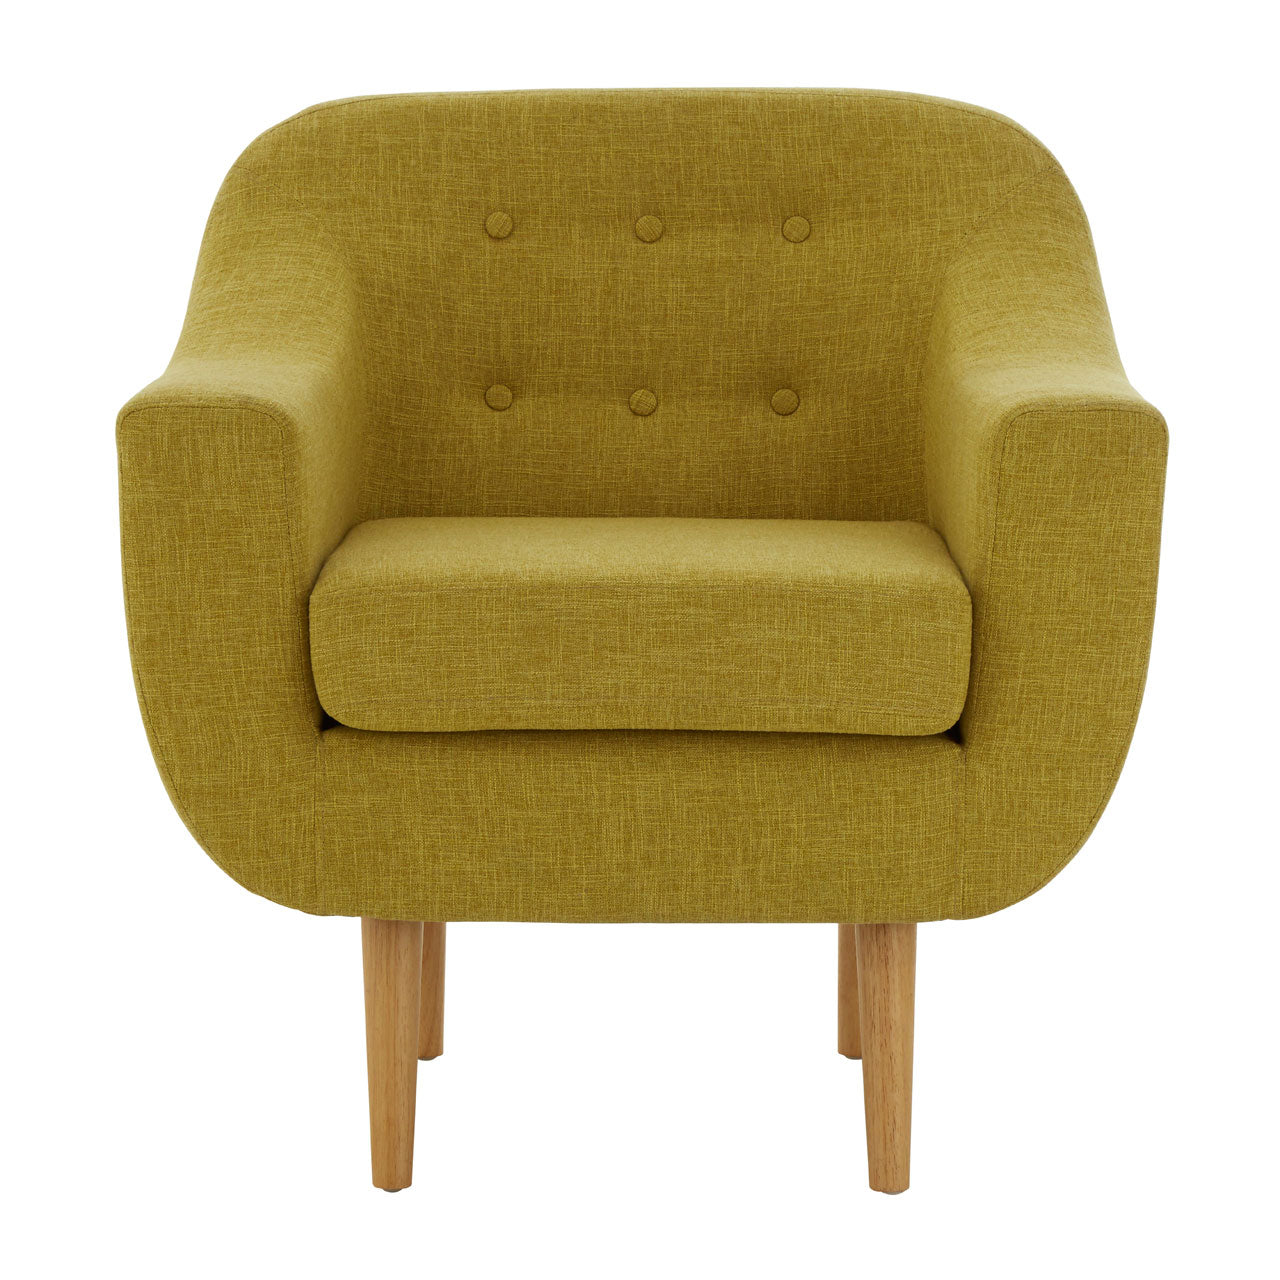 Odense Chair in Yellow